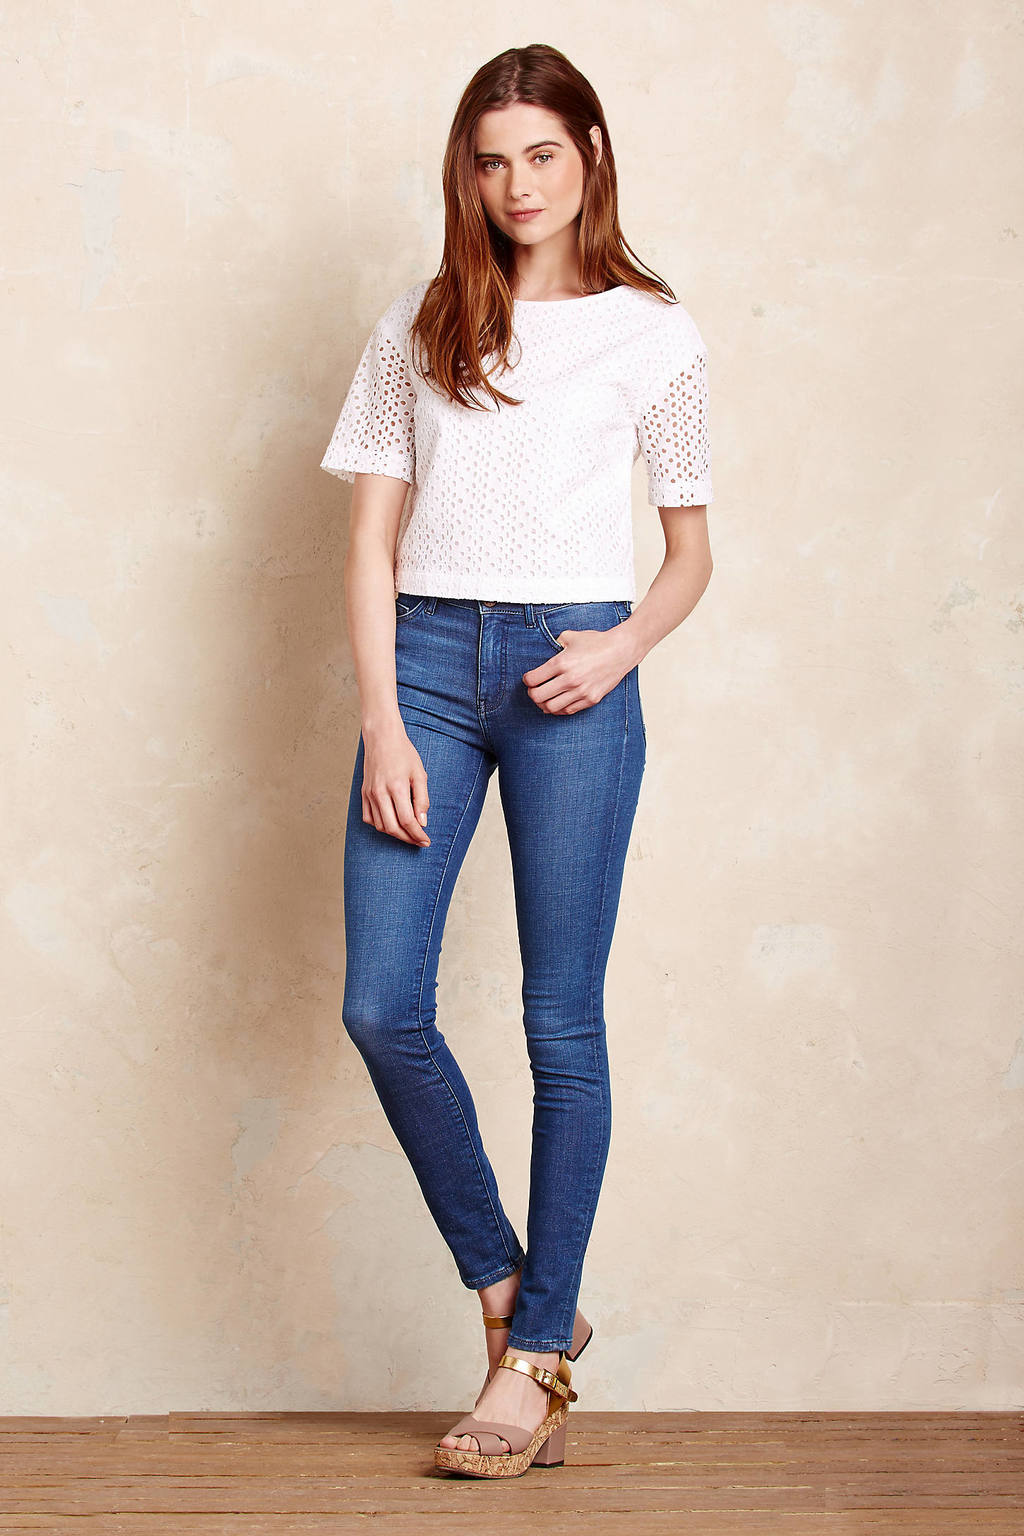 Mi H Bodycon Skinny Jeans - style: skinny leg; length: standard; pattern: plain; waist: mid/regular rise; predominant colour: denim; occasions: casual; fibres: cotton - stretch; jeans detail: shading down centre of thigh; texture group: denim; pattern type: fabric; wardrobe: basic; season: a/w 2016